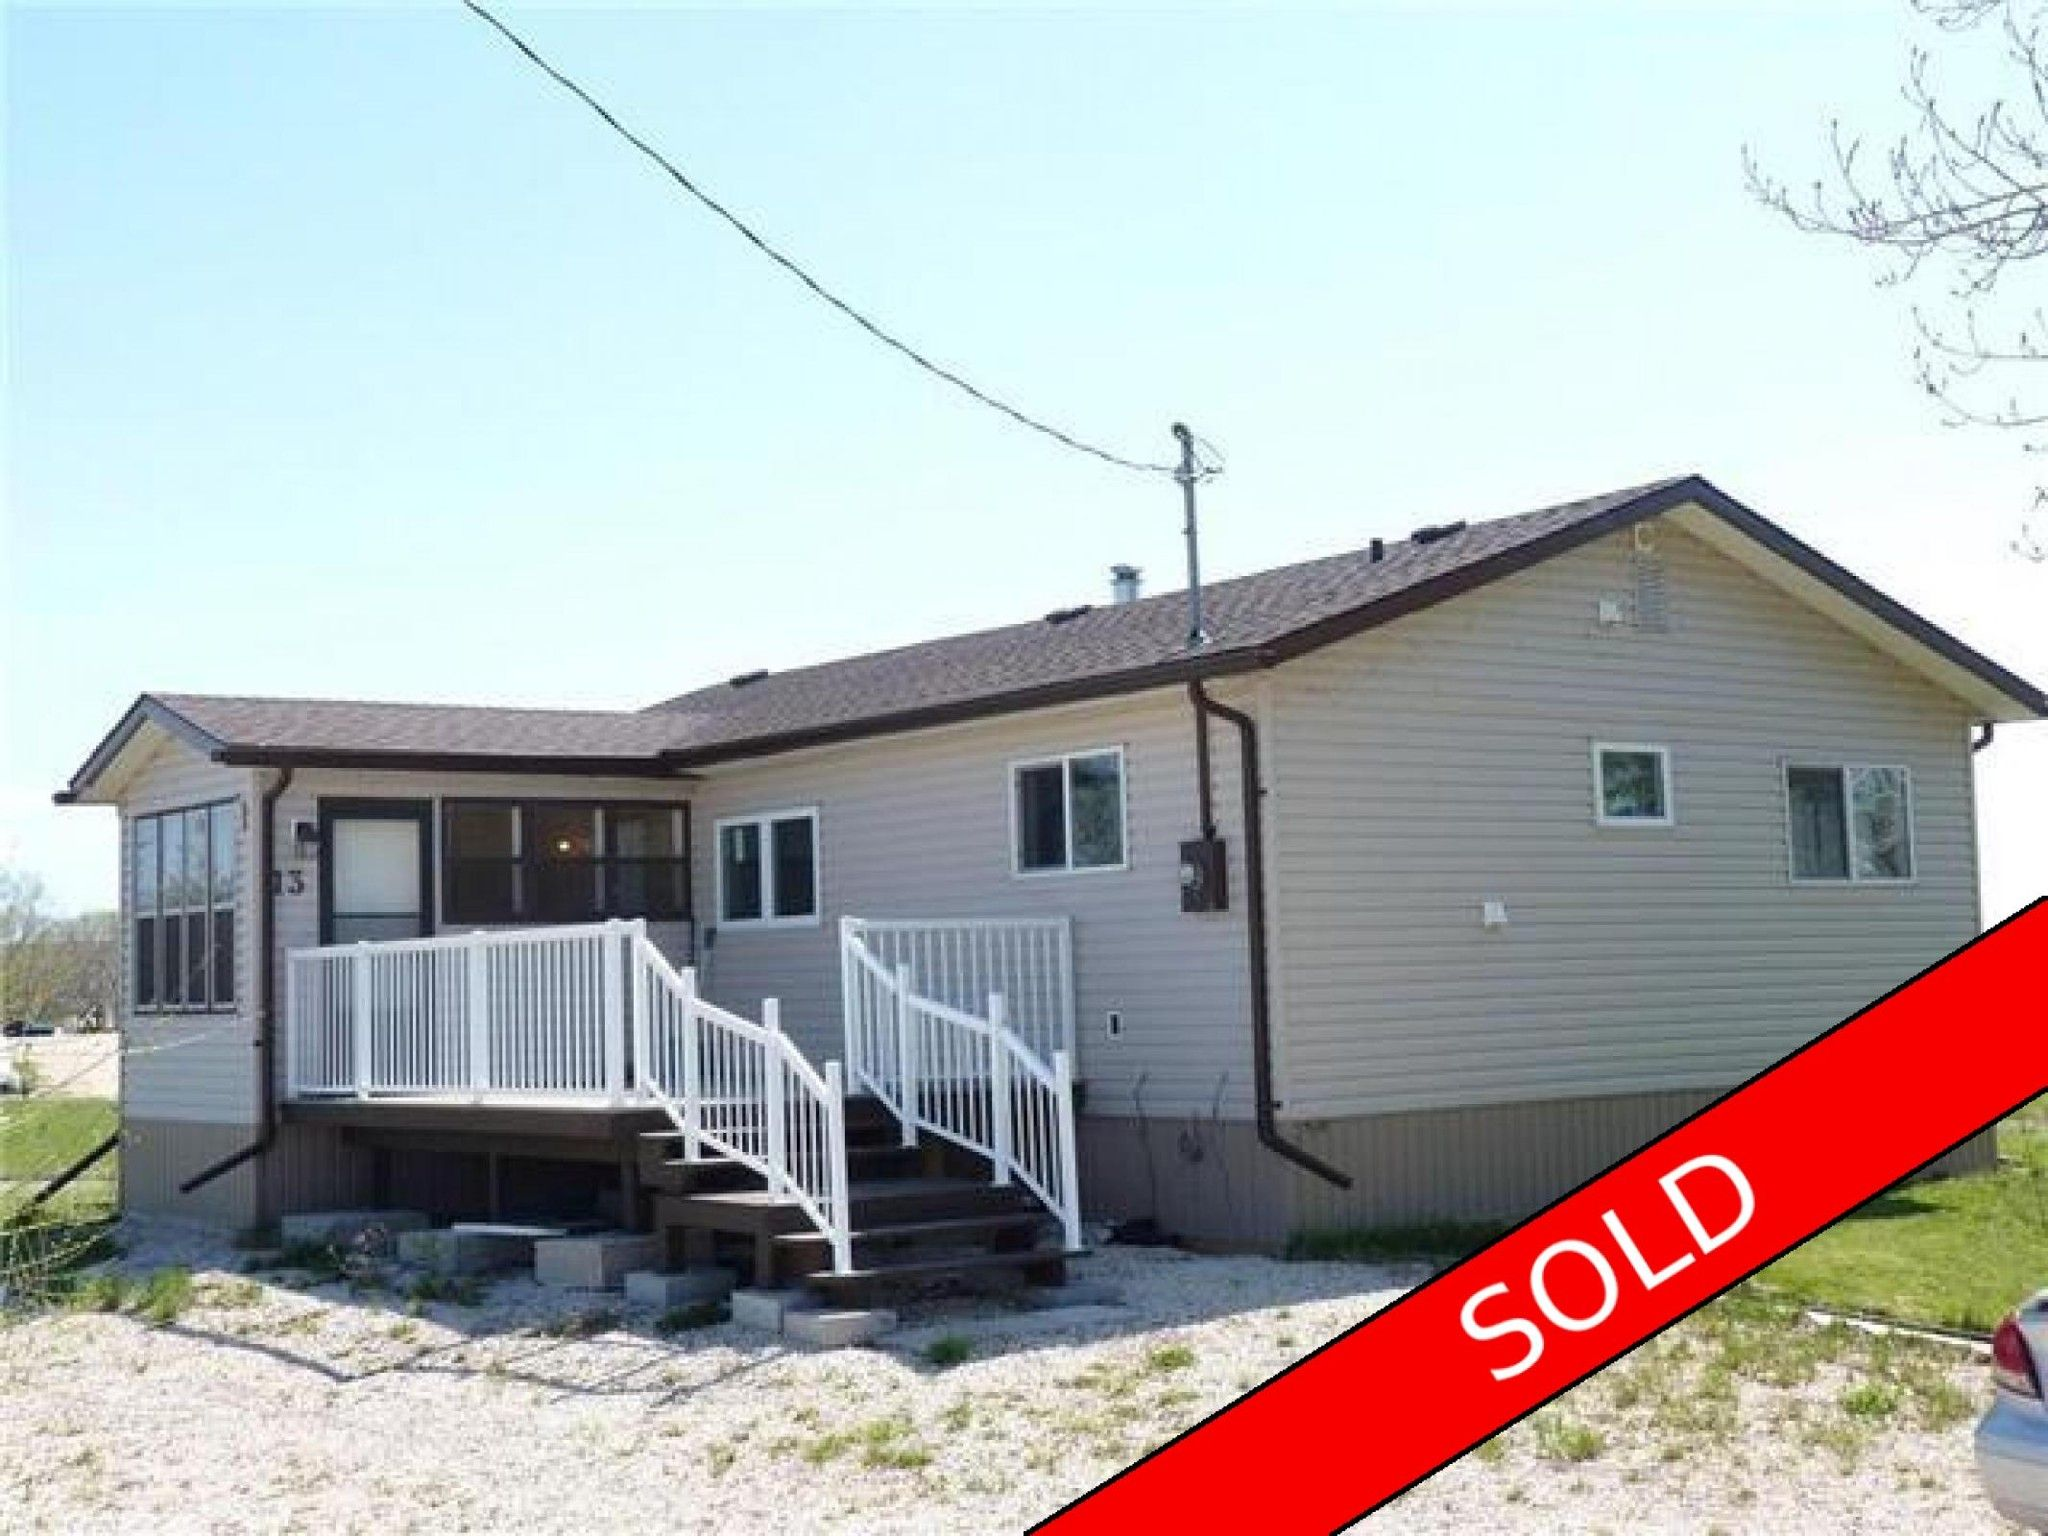 Main Photo: 13 Marina Row in St Laurent, MB R0C2S0: House for sale : MLS®# 1700920